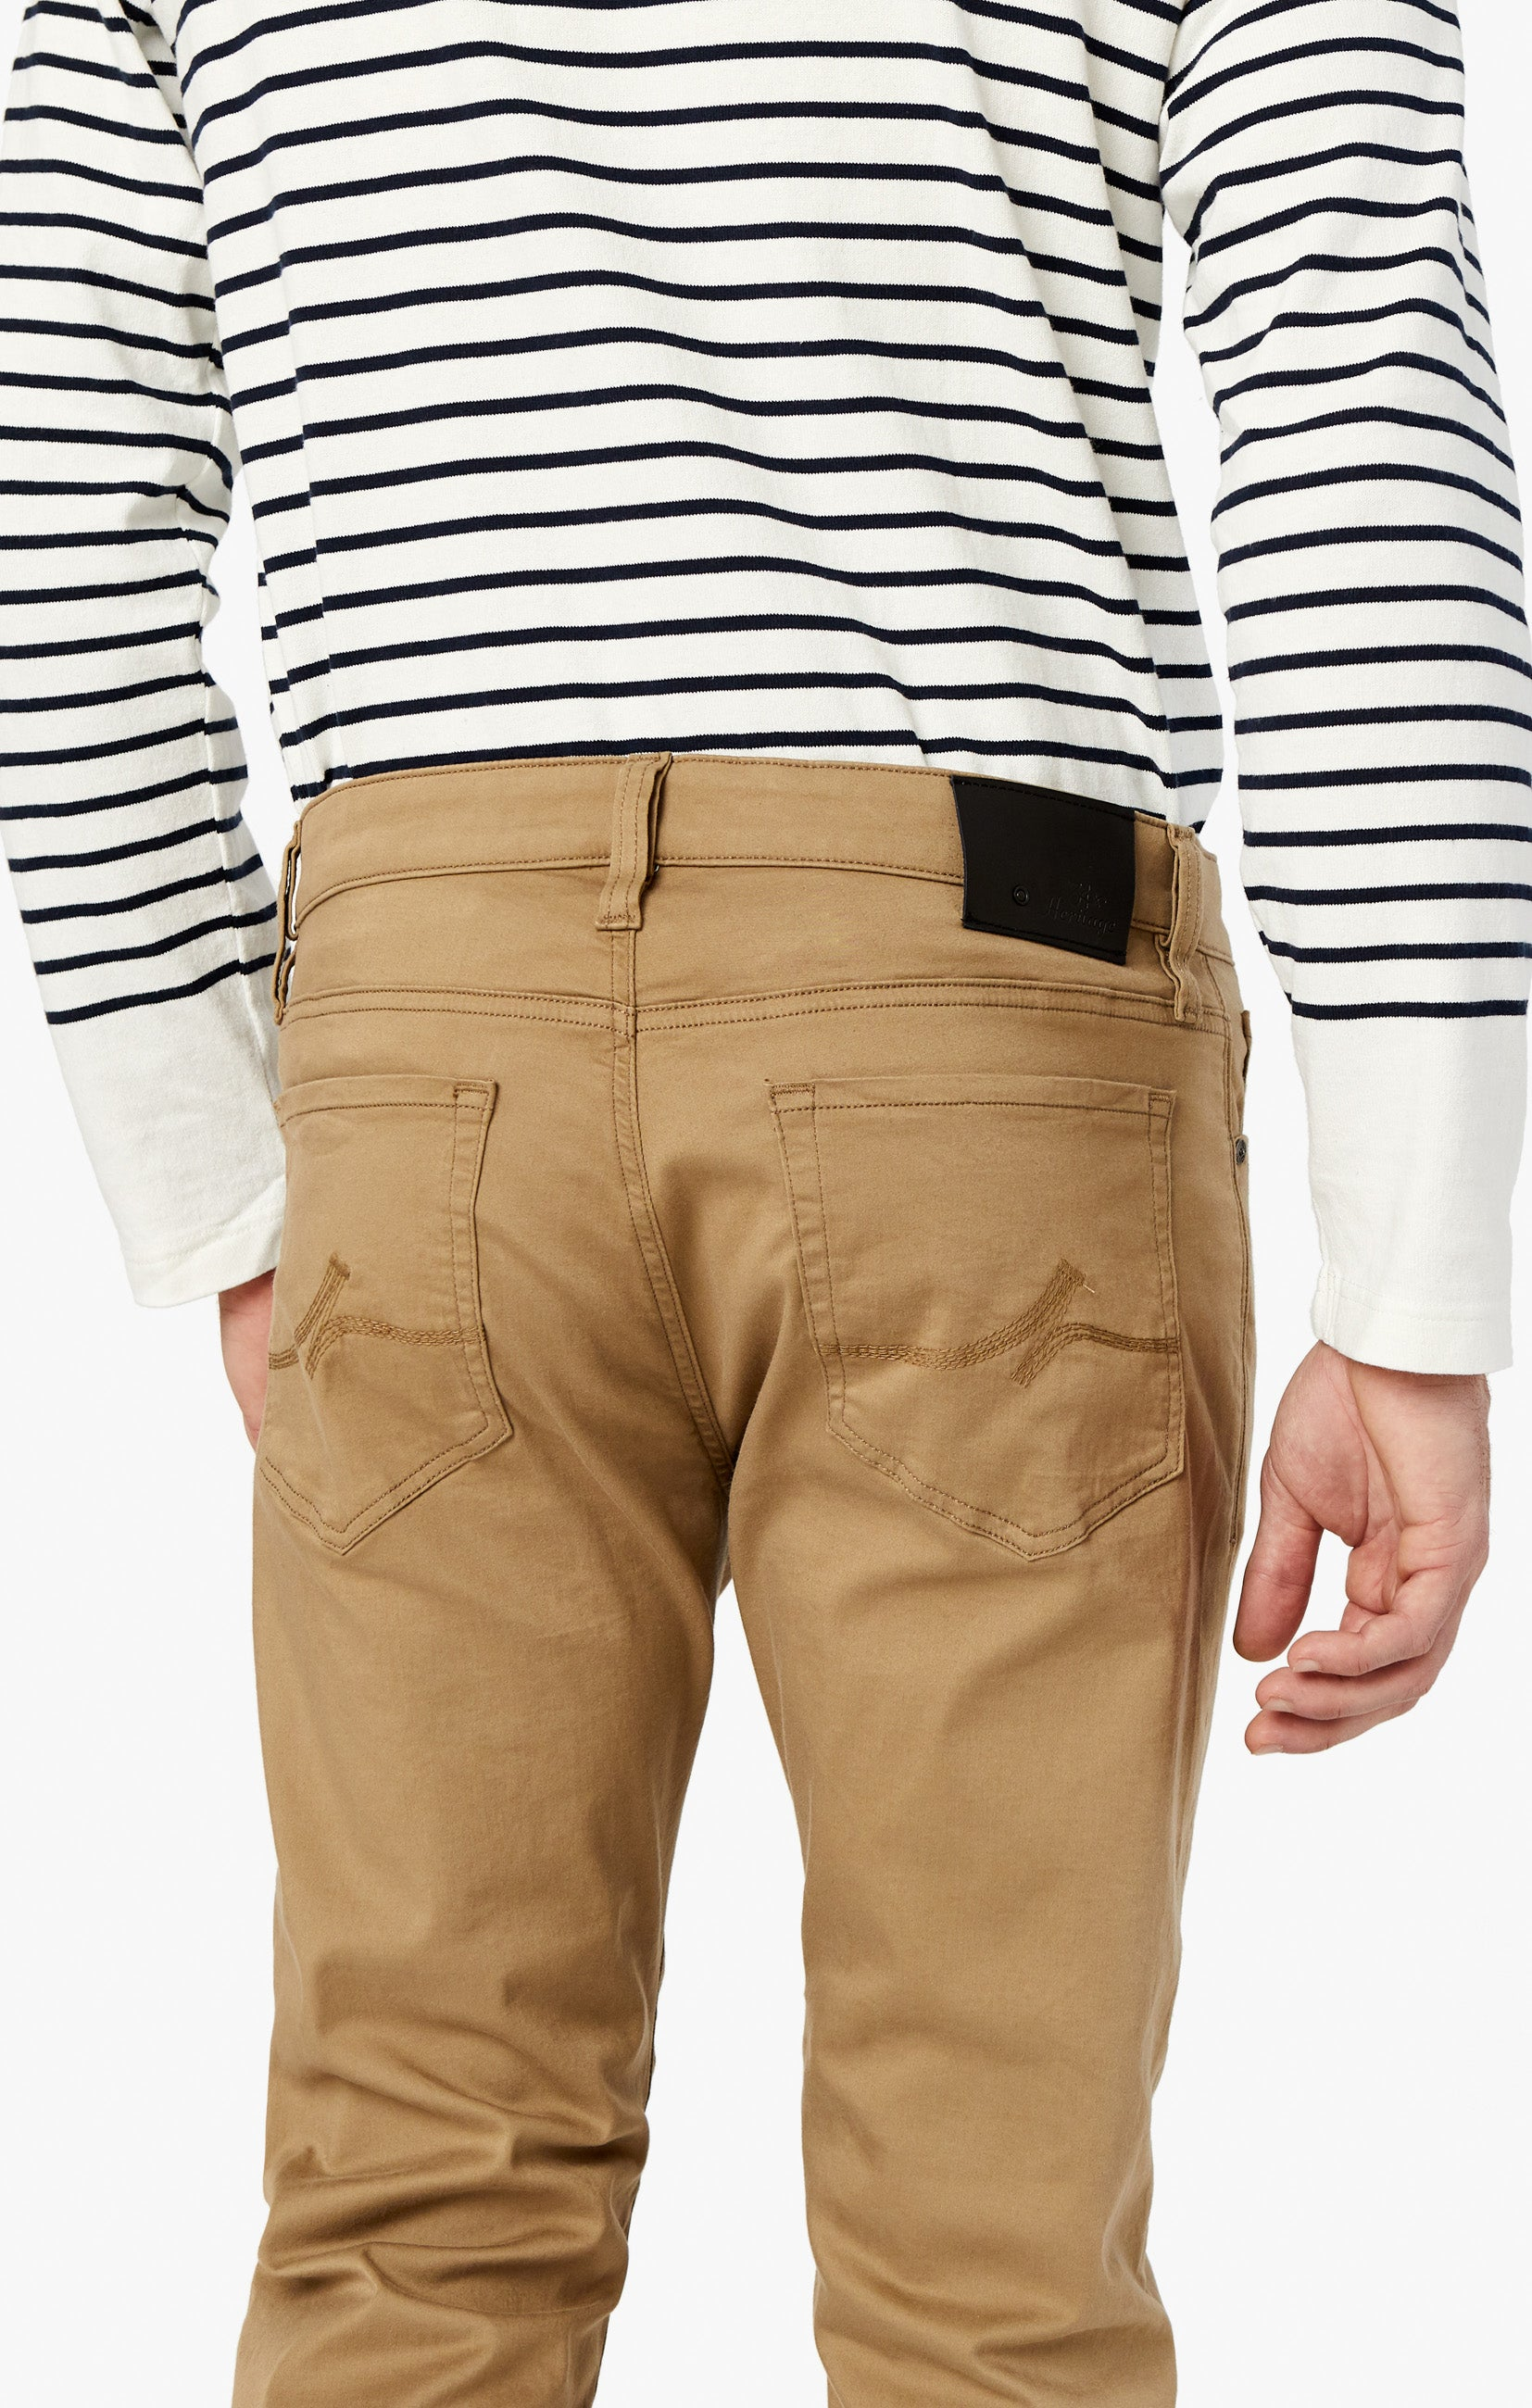 Courage Straight Leg Pants In Khaki Twill Image 4